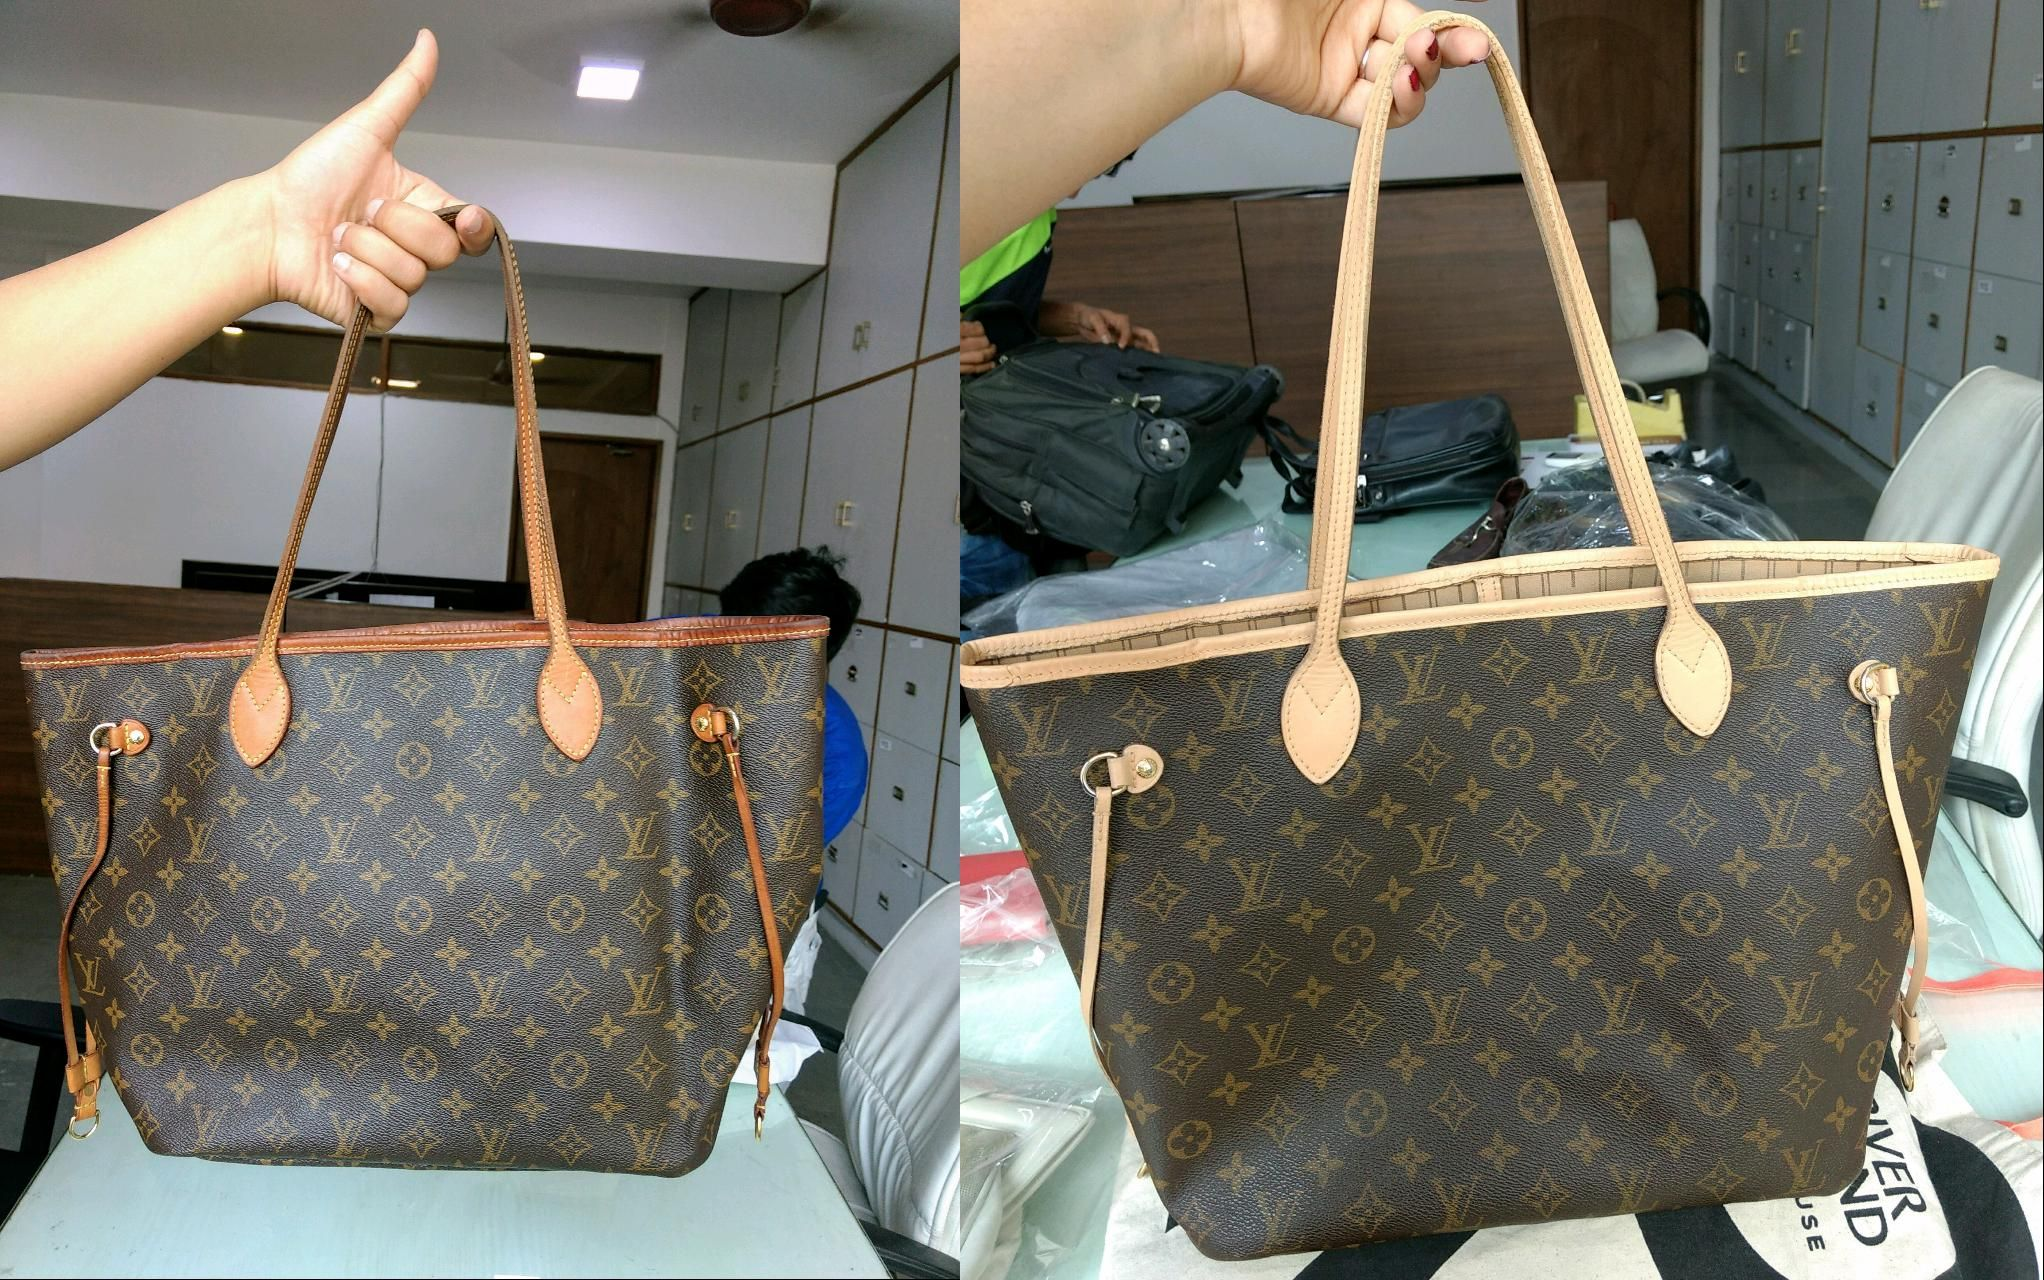 05358e1f6 Look how we restored the colour of this Louis Vuitton leather handbag!  #handbagspa #bagcleaning #bagdrycleaning #leatherlaundry #beforeandafter  #asgoodasnew ...